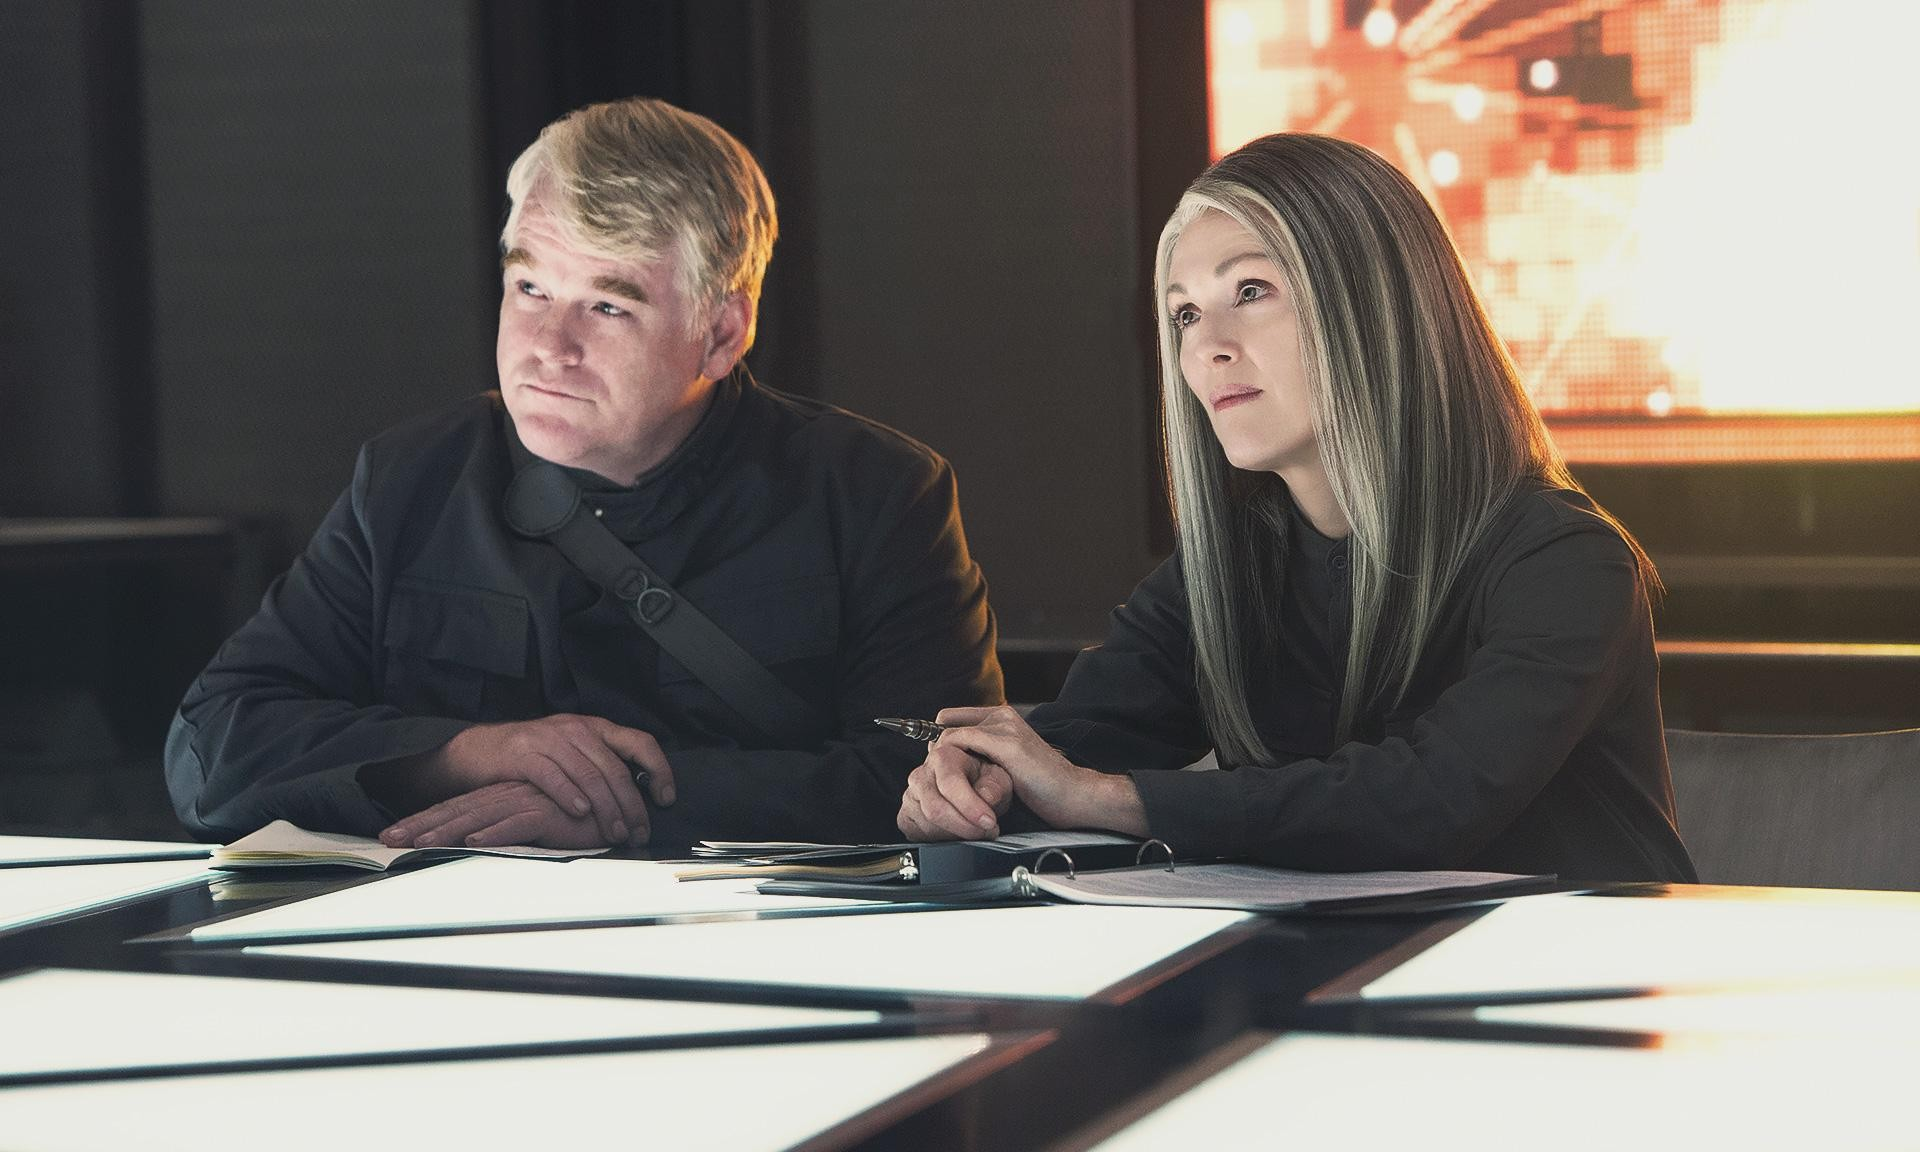 'Hunger Games: Mockingjay' First Reveal at Comic-Con: Philip Seymour Hoffman Introduces the Rebellion